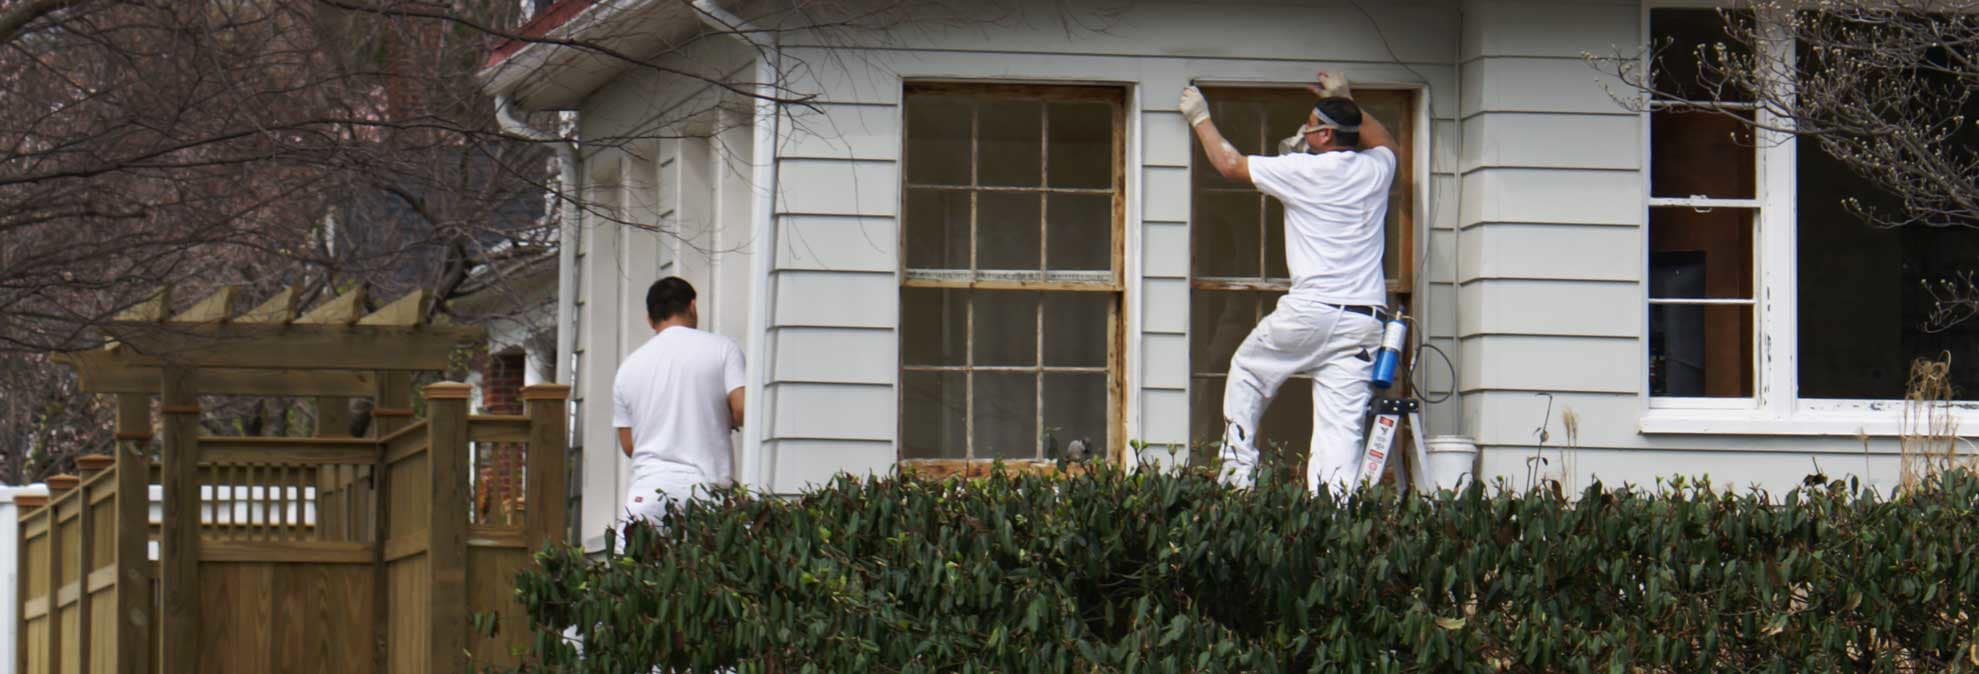 What You Need to Check Before Repainting Your Home's Exterior